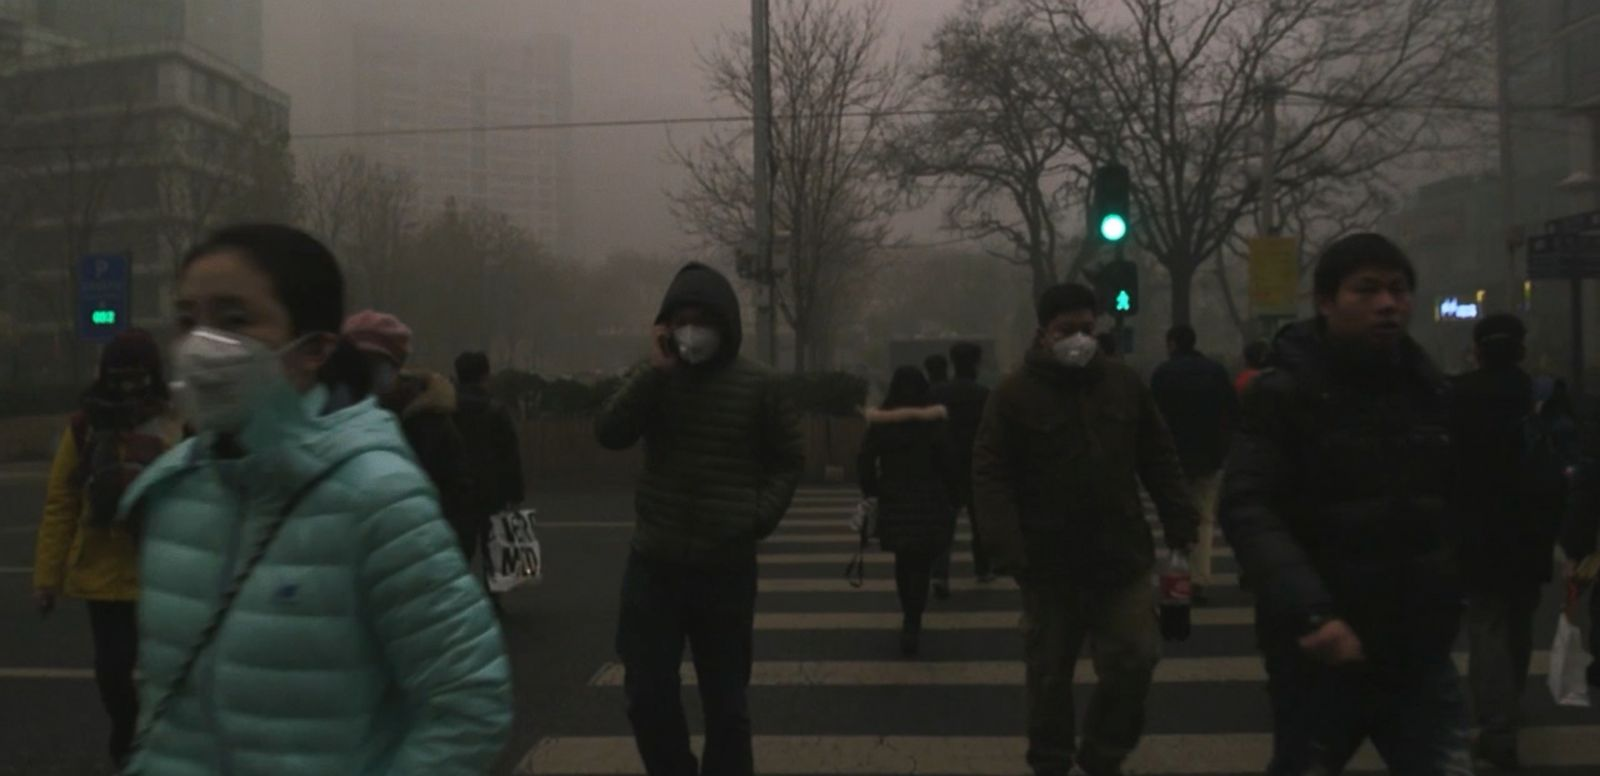 VIDEO: Beijing Faces 'Smogpocalypse' as World Leaders Kick Off Climate Summit